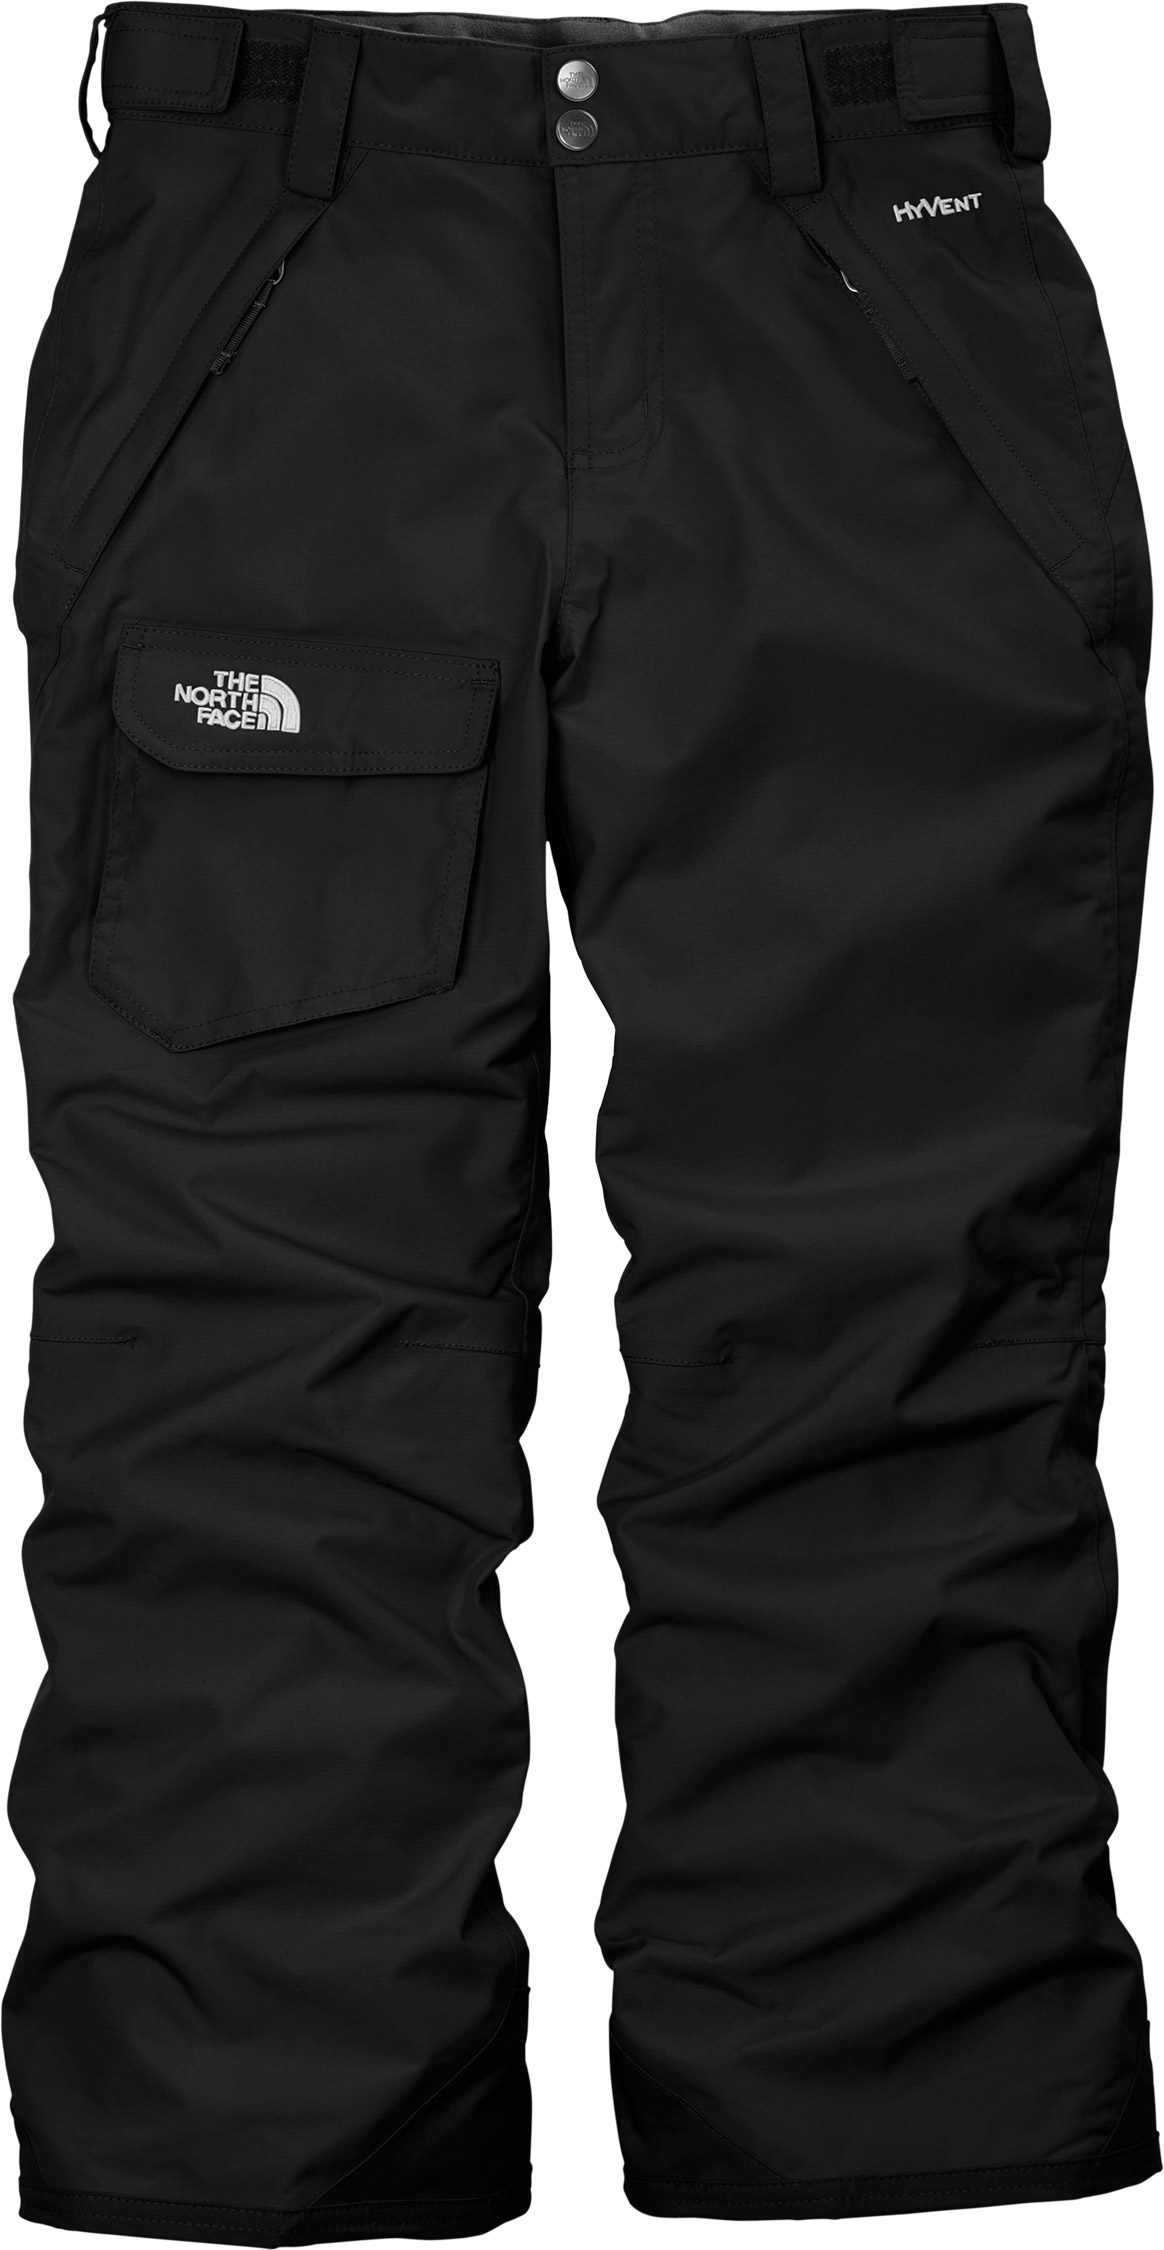 ad05eb32f49 The North Face Freedom Insulated Ski Pant - Girls